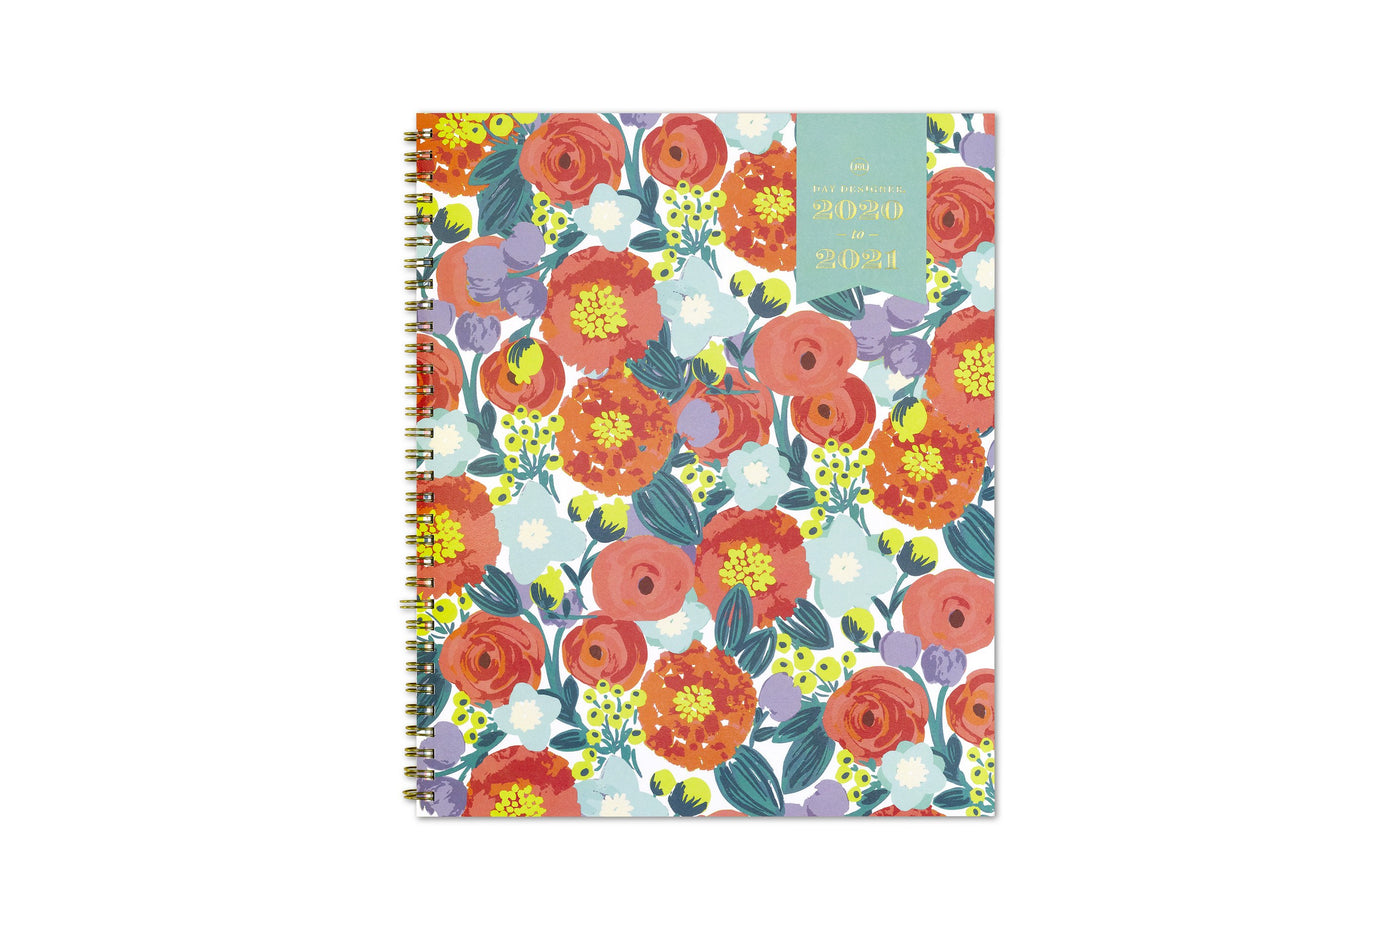 july 2020 - june 2021 weekly planner with orange yellow and pink floral patterns on front cover.